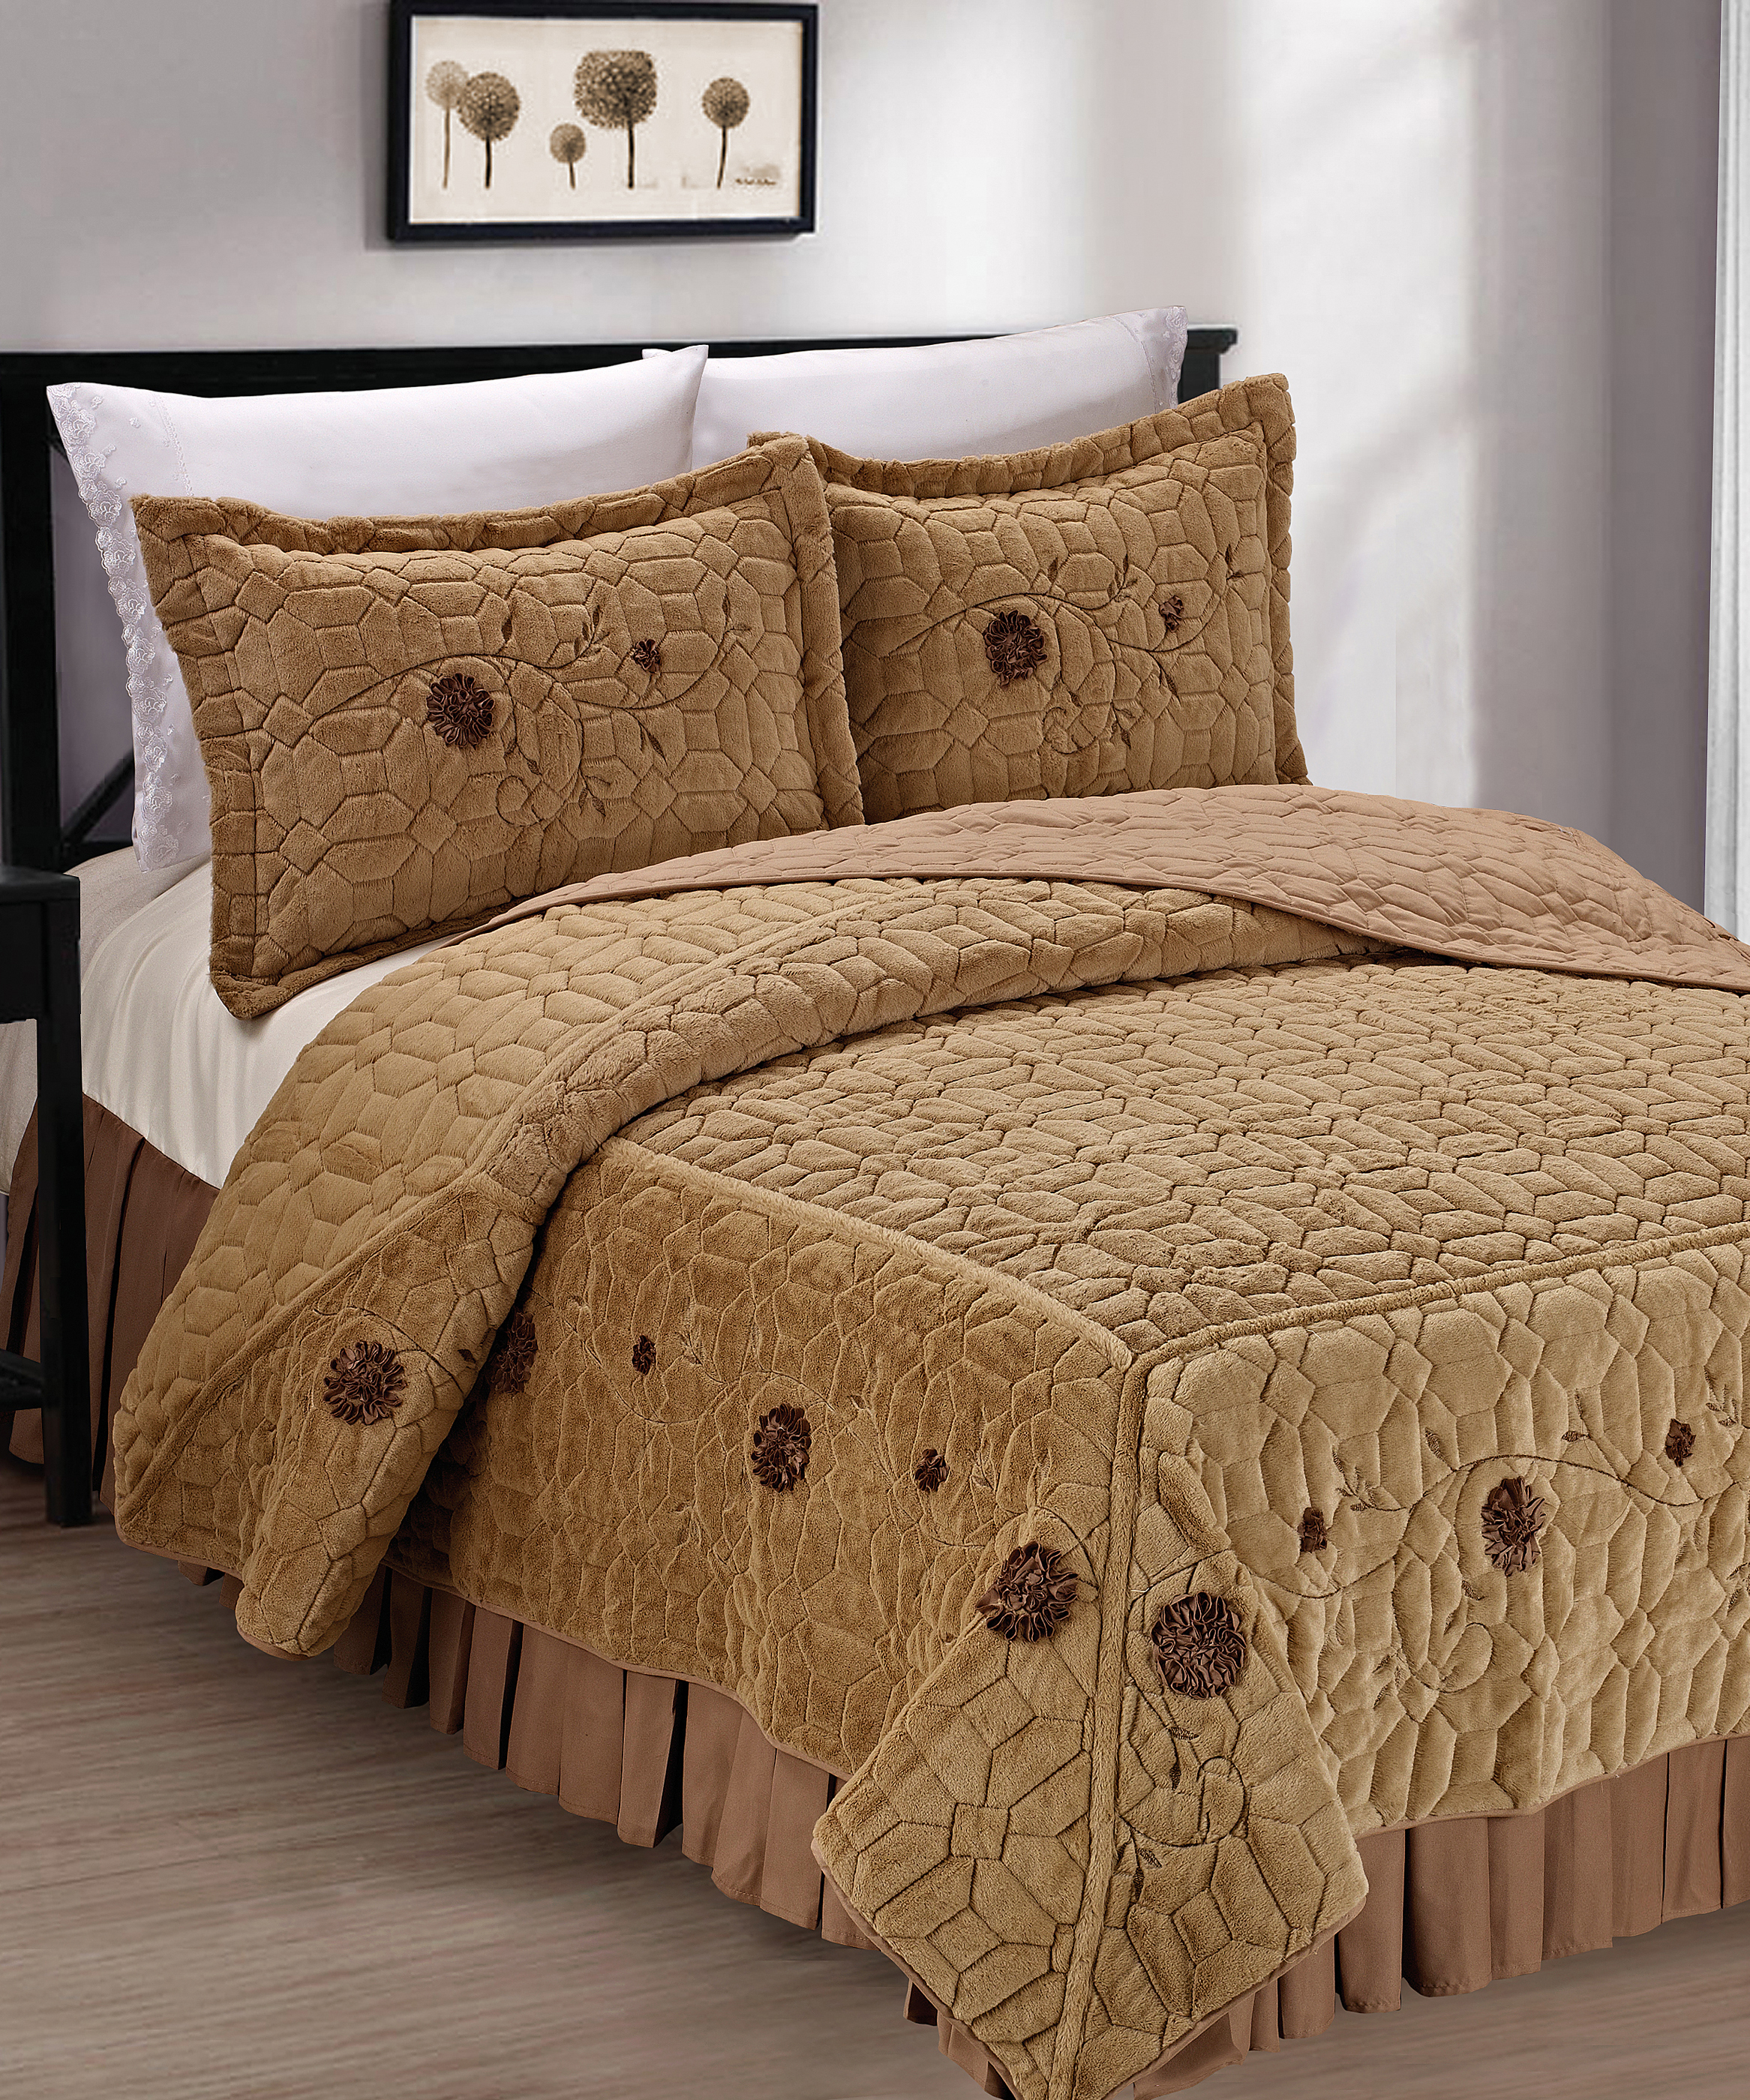 Faux Fur Ribbon Embroidery Bedspread Set Bnf Home Inc